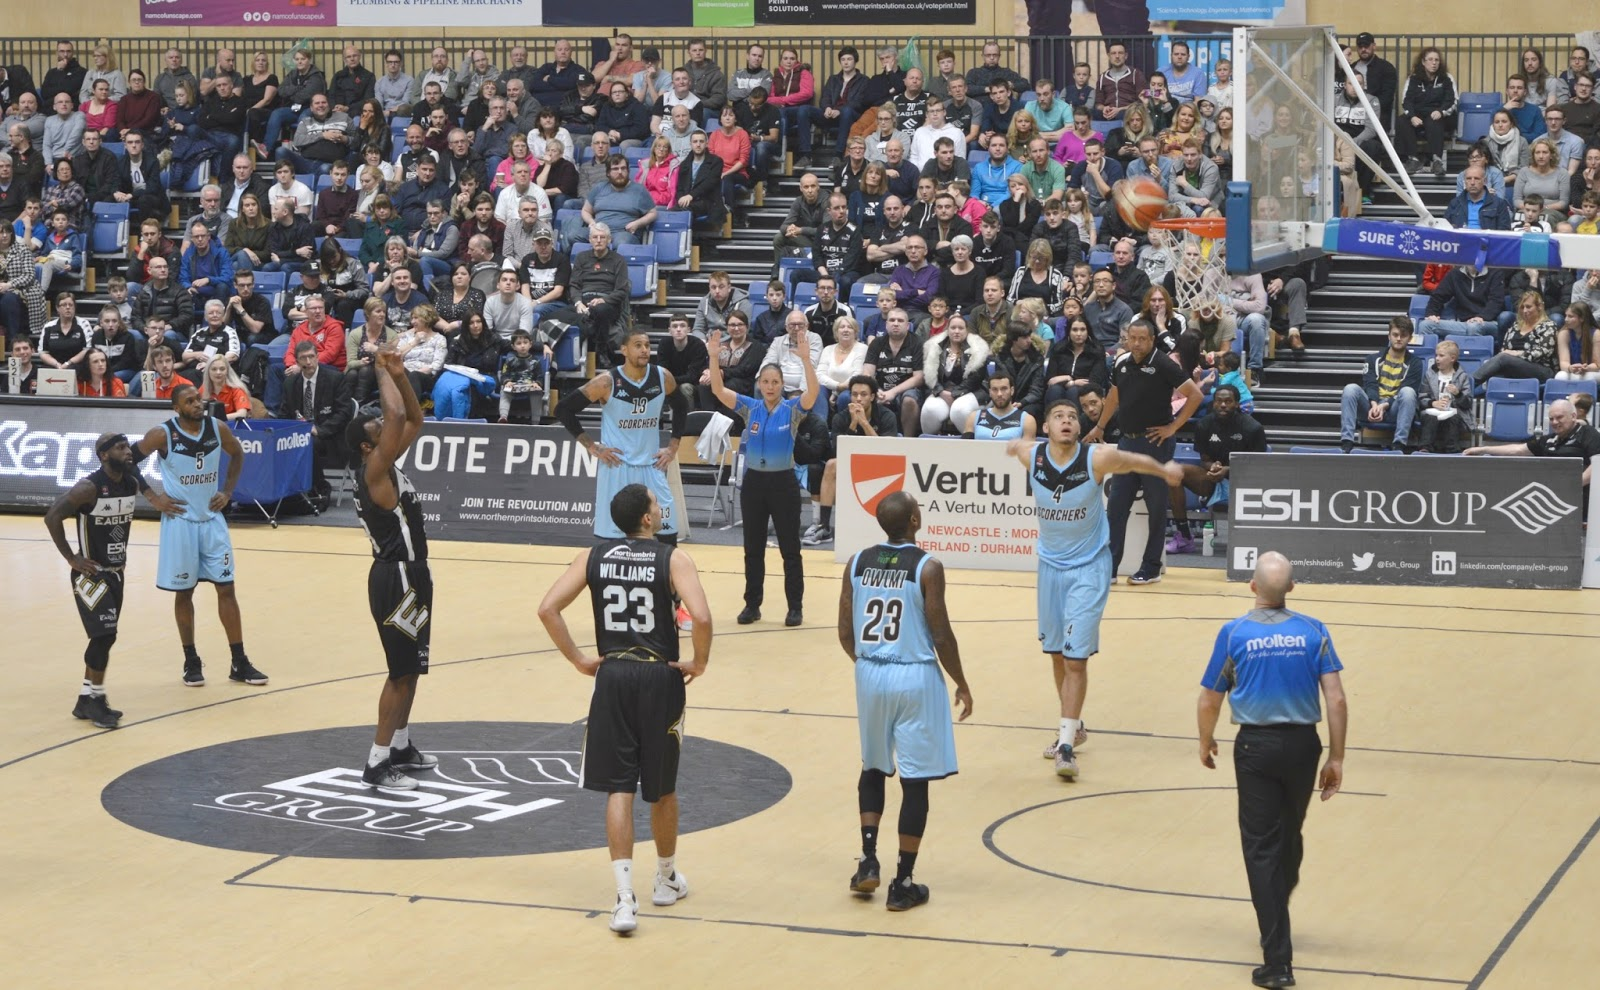 Date Night at Newcastle Eagles Basketball Game, Sport Central